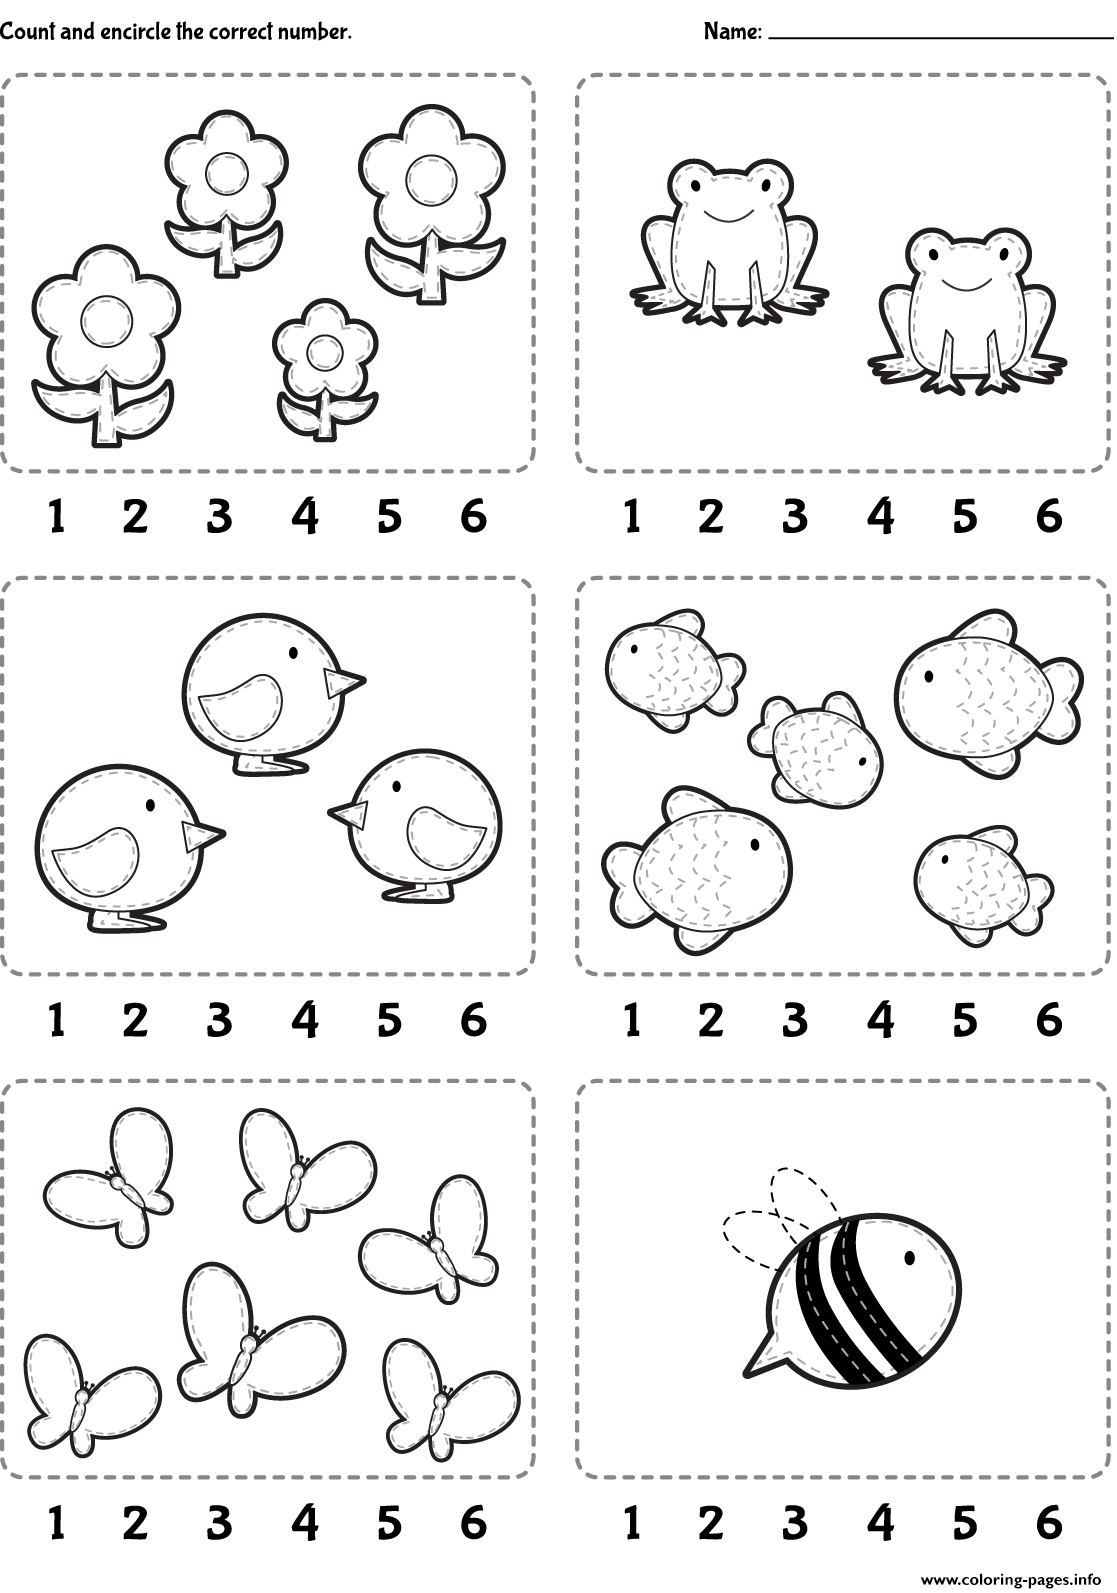 coloring pages : Printable Color By Number Pages Lovely Number 3 Coloring  Pages For Kids Counting Sheets Printables Printable Color by Number Pages ~  affiliateprogrambook.com | 1593x1117